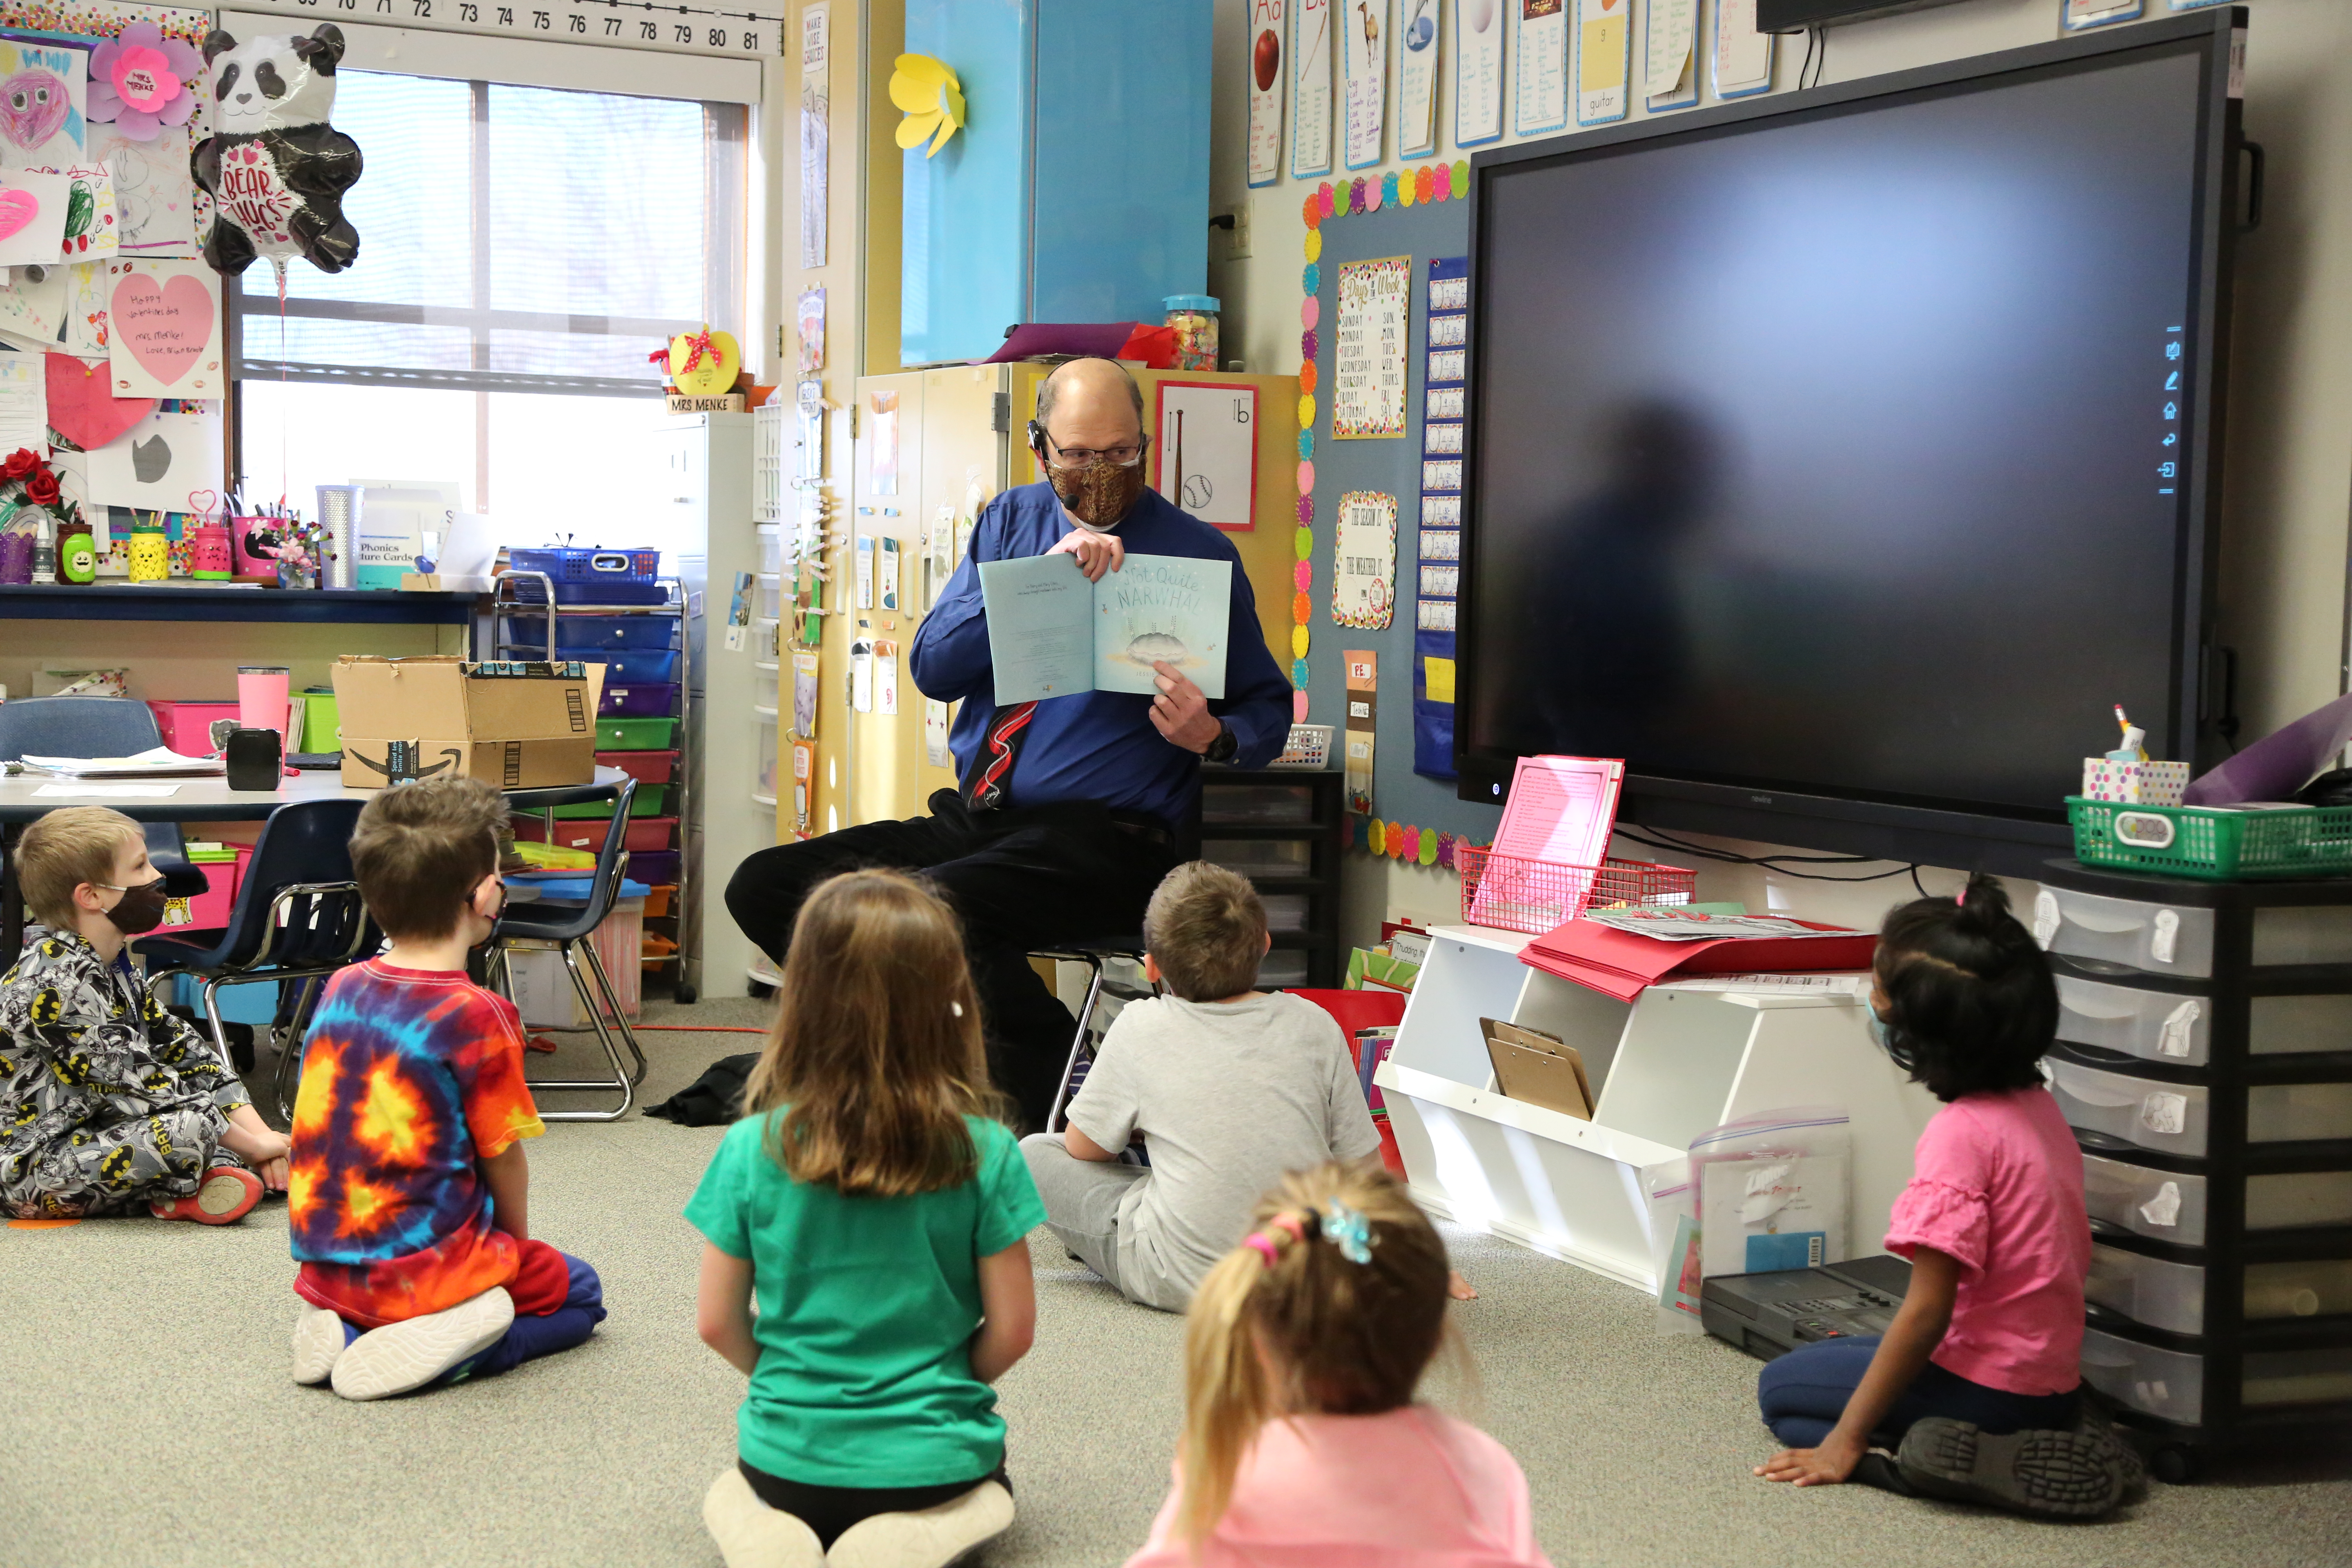 A PSD Board of Education member reads to kindergarteners.